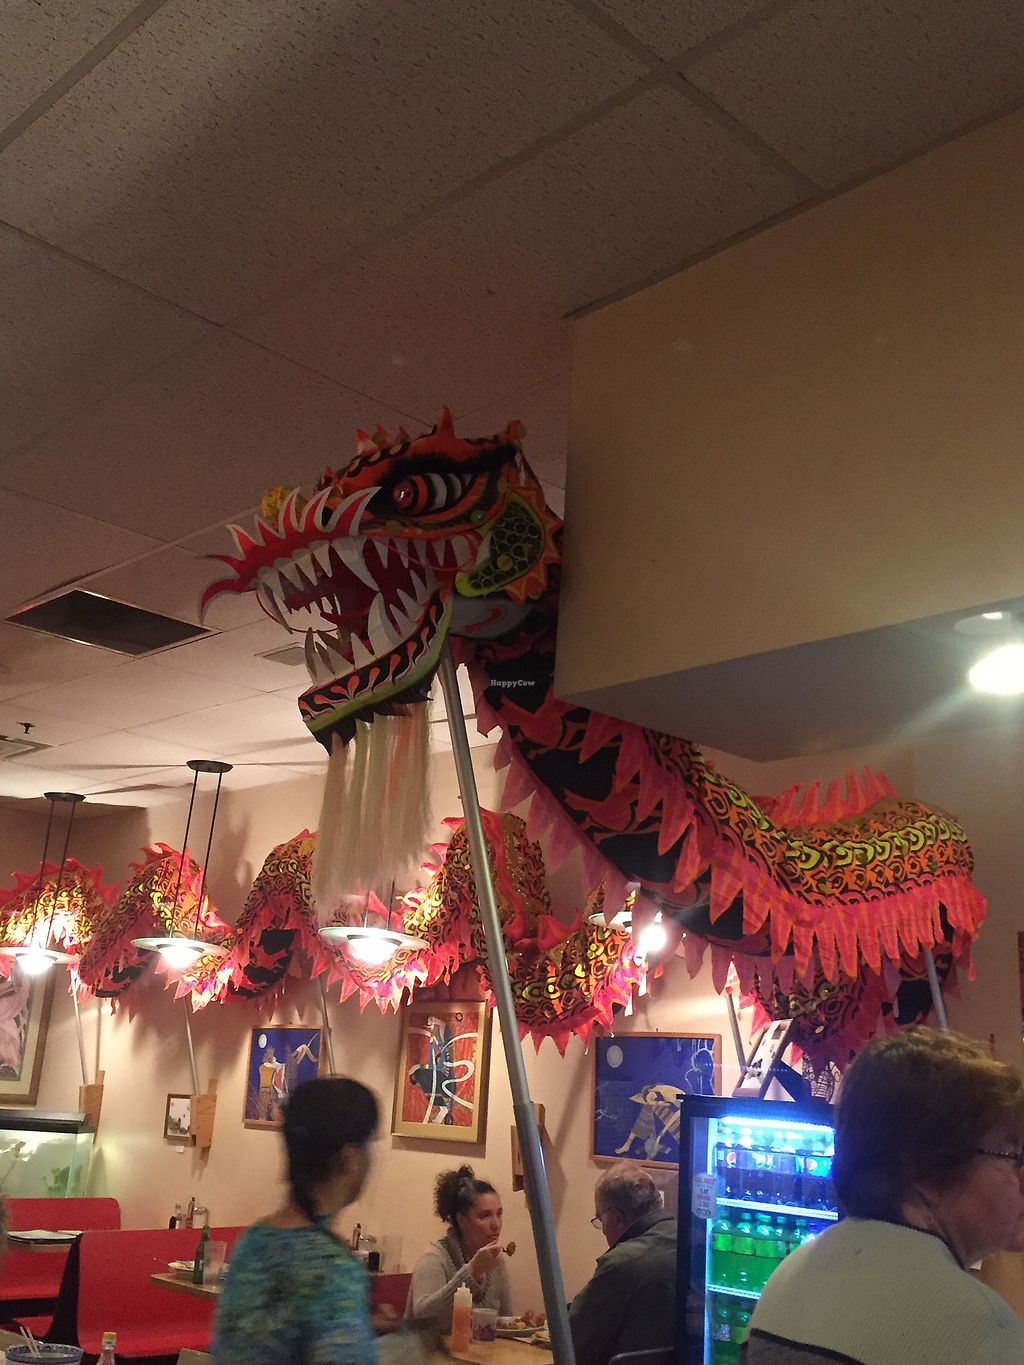 """Photo of China Garden  by <a href=""""/members/profile/Bgeezy"""">Bgeezy</a> <br/>Dragon <br/> October 14, 2017  - <a href='/contact/abuse/image/71052/315308'>Report</a>"""